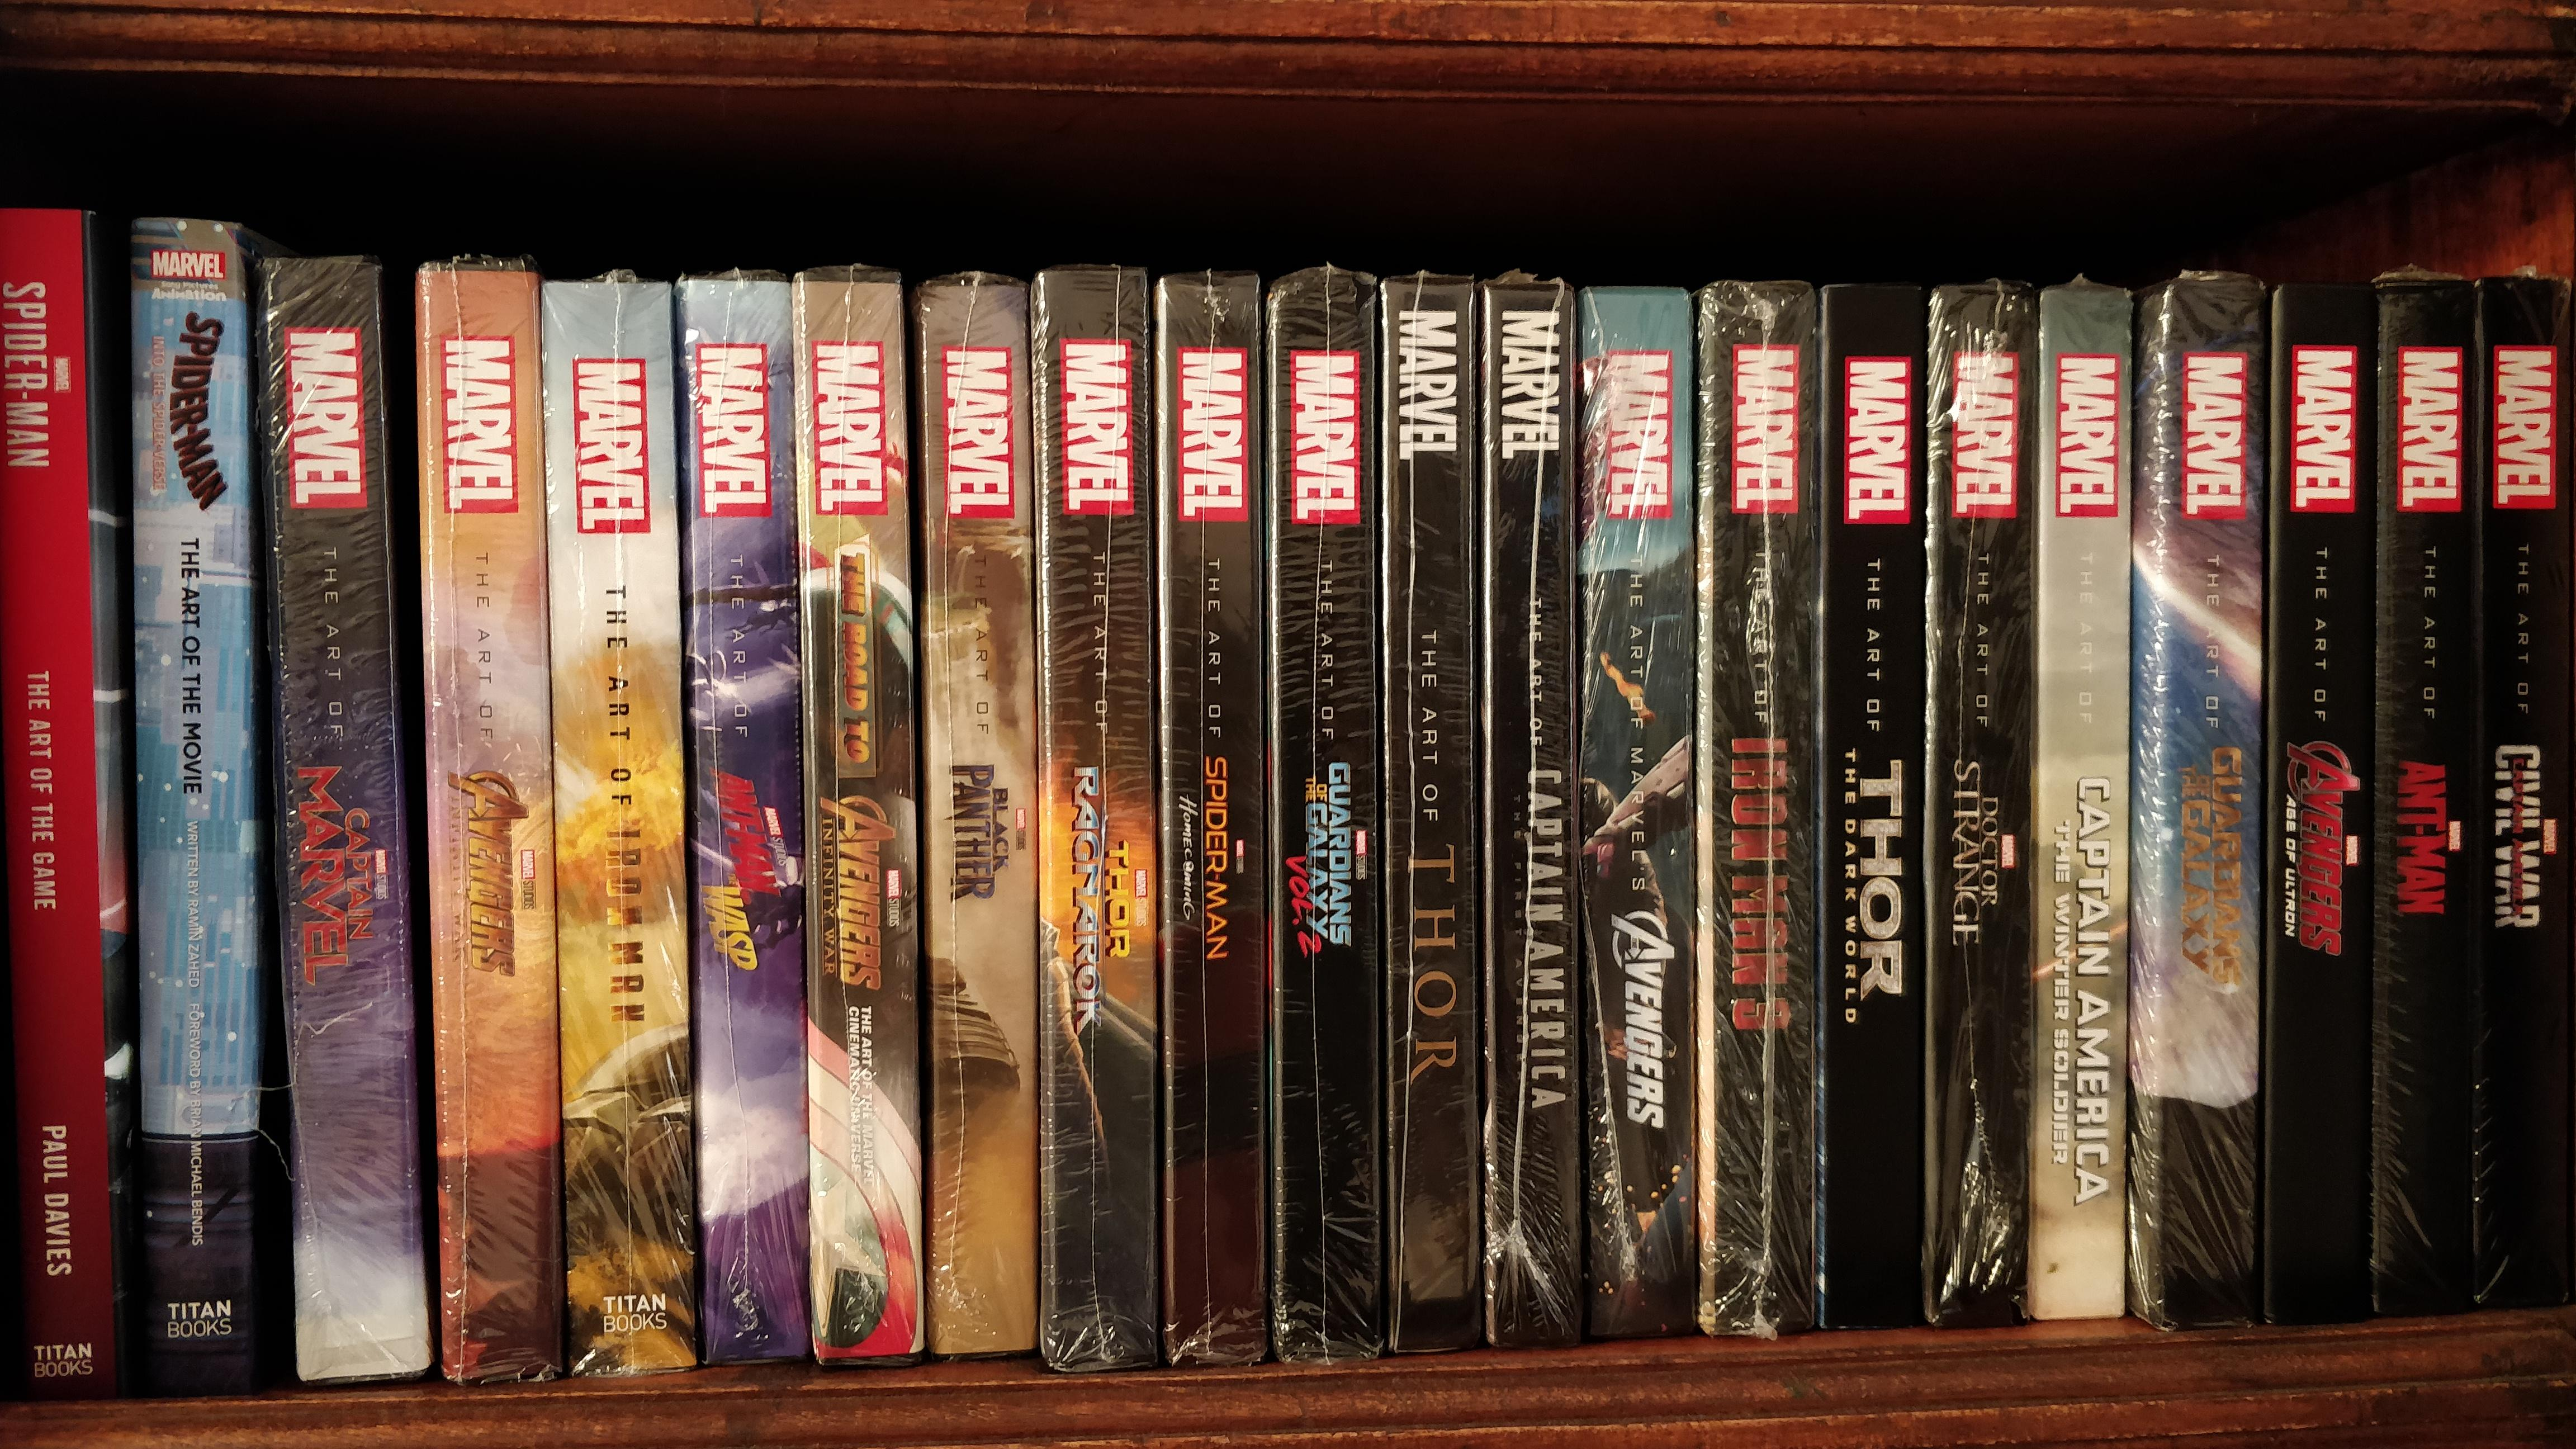 The Art of Marvel books are my obsession!